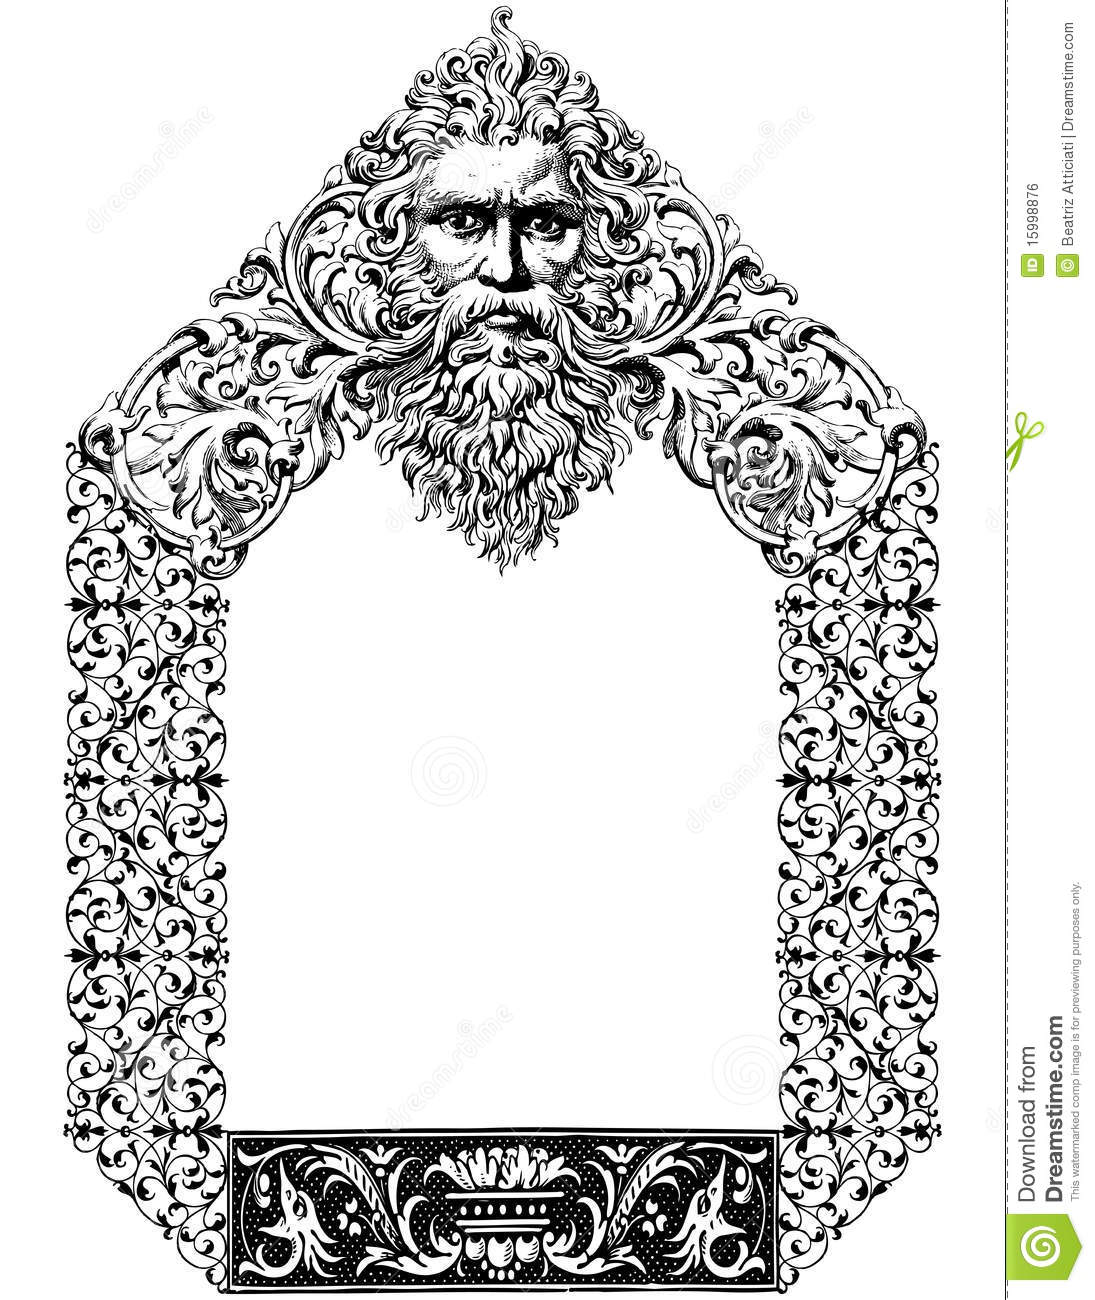 Victorian style frame with a God´s figure as the main subject.